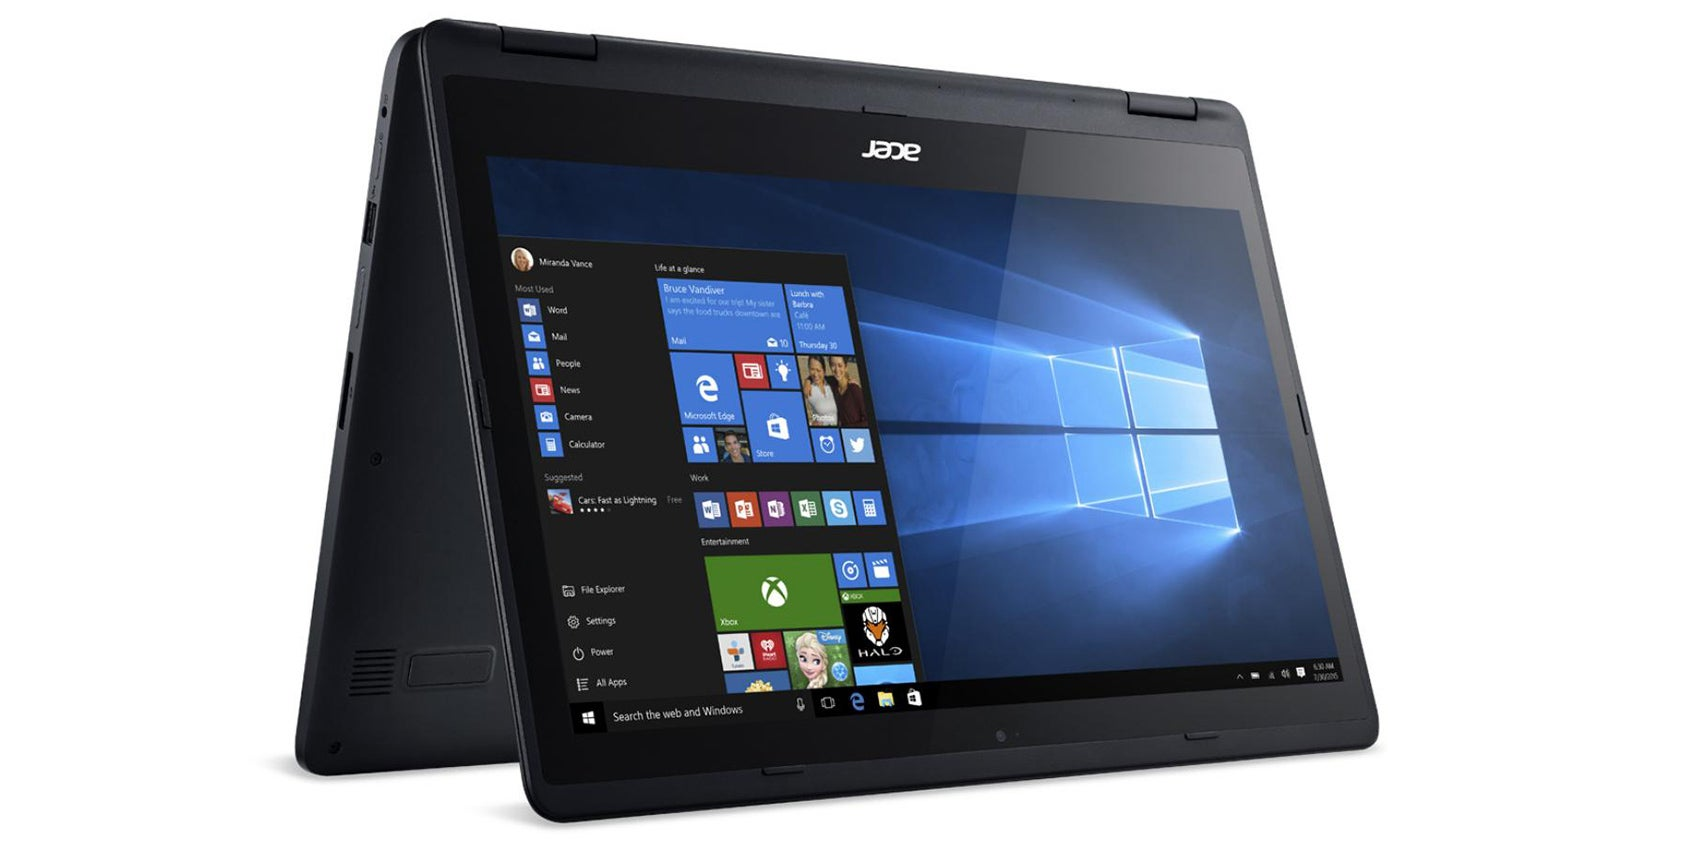 Acer's New All-in-One Has a Battery So You Can Use It Anywhere